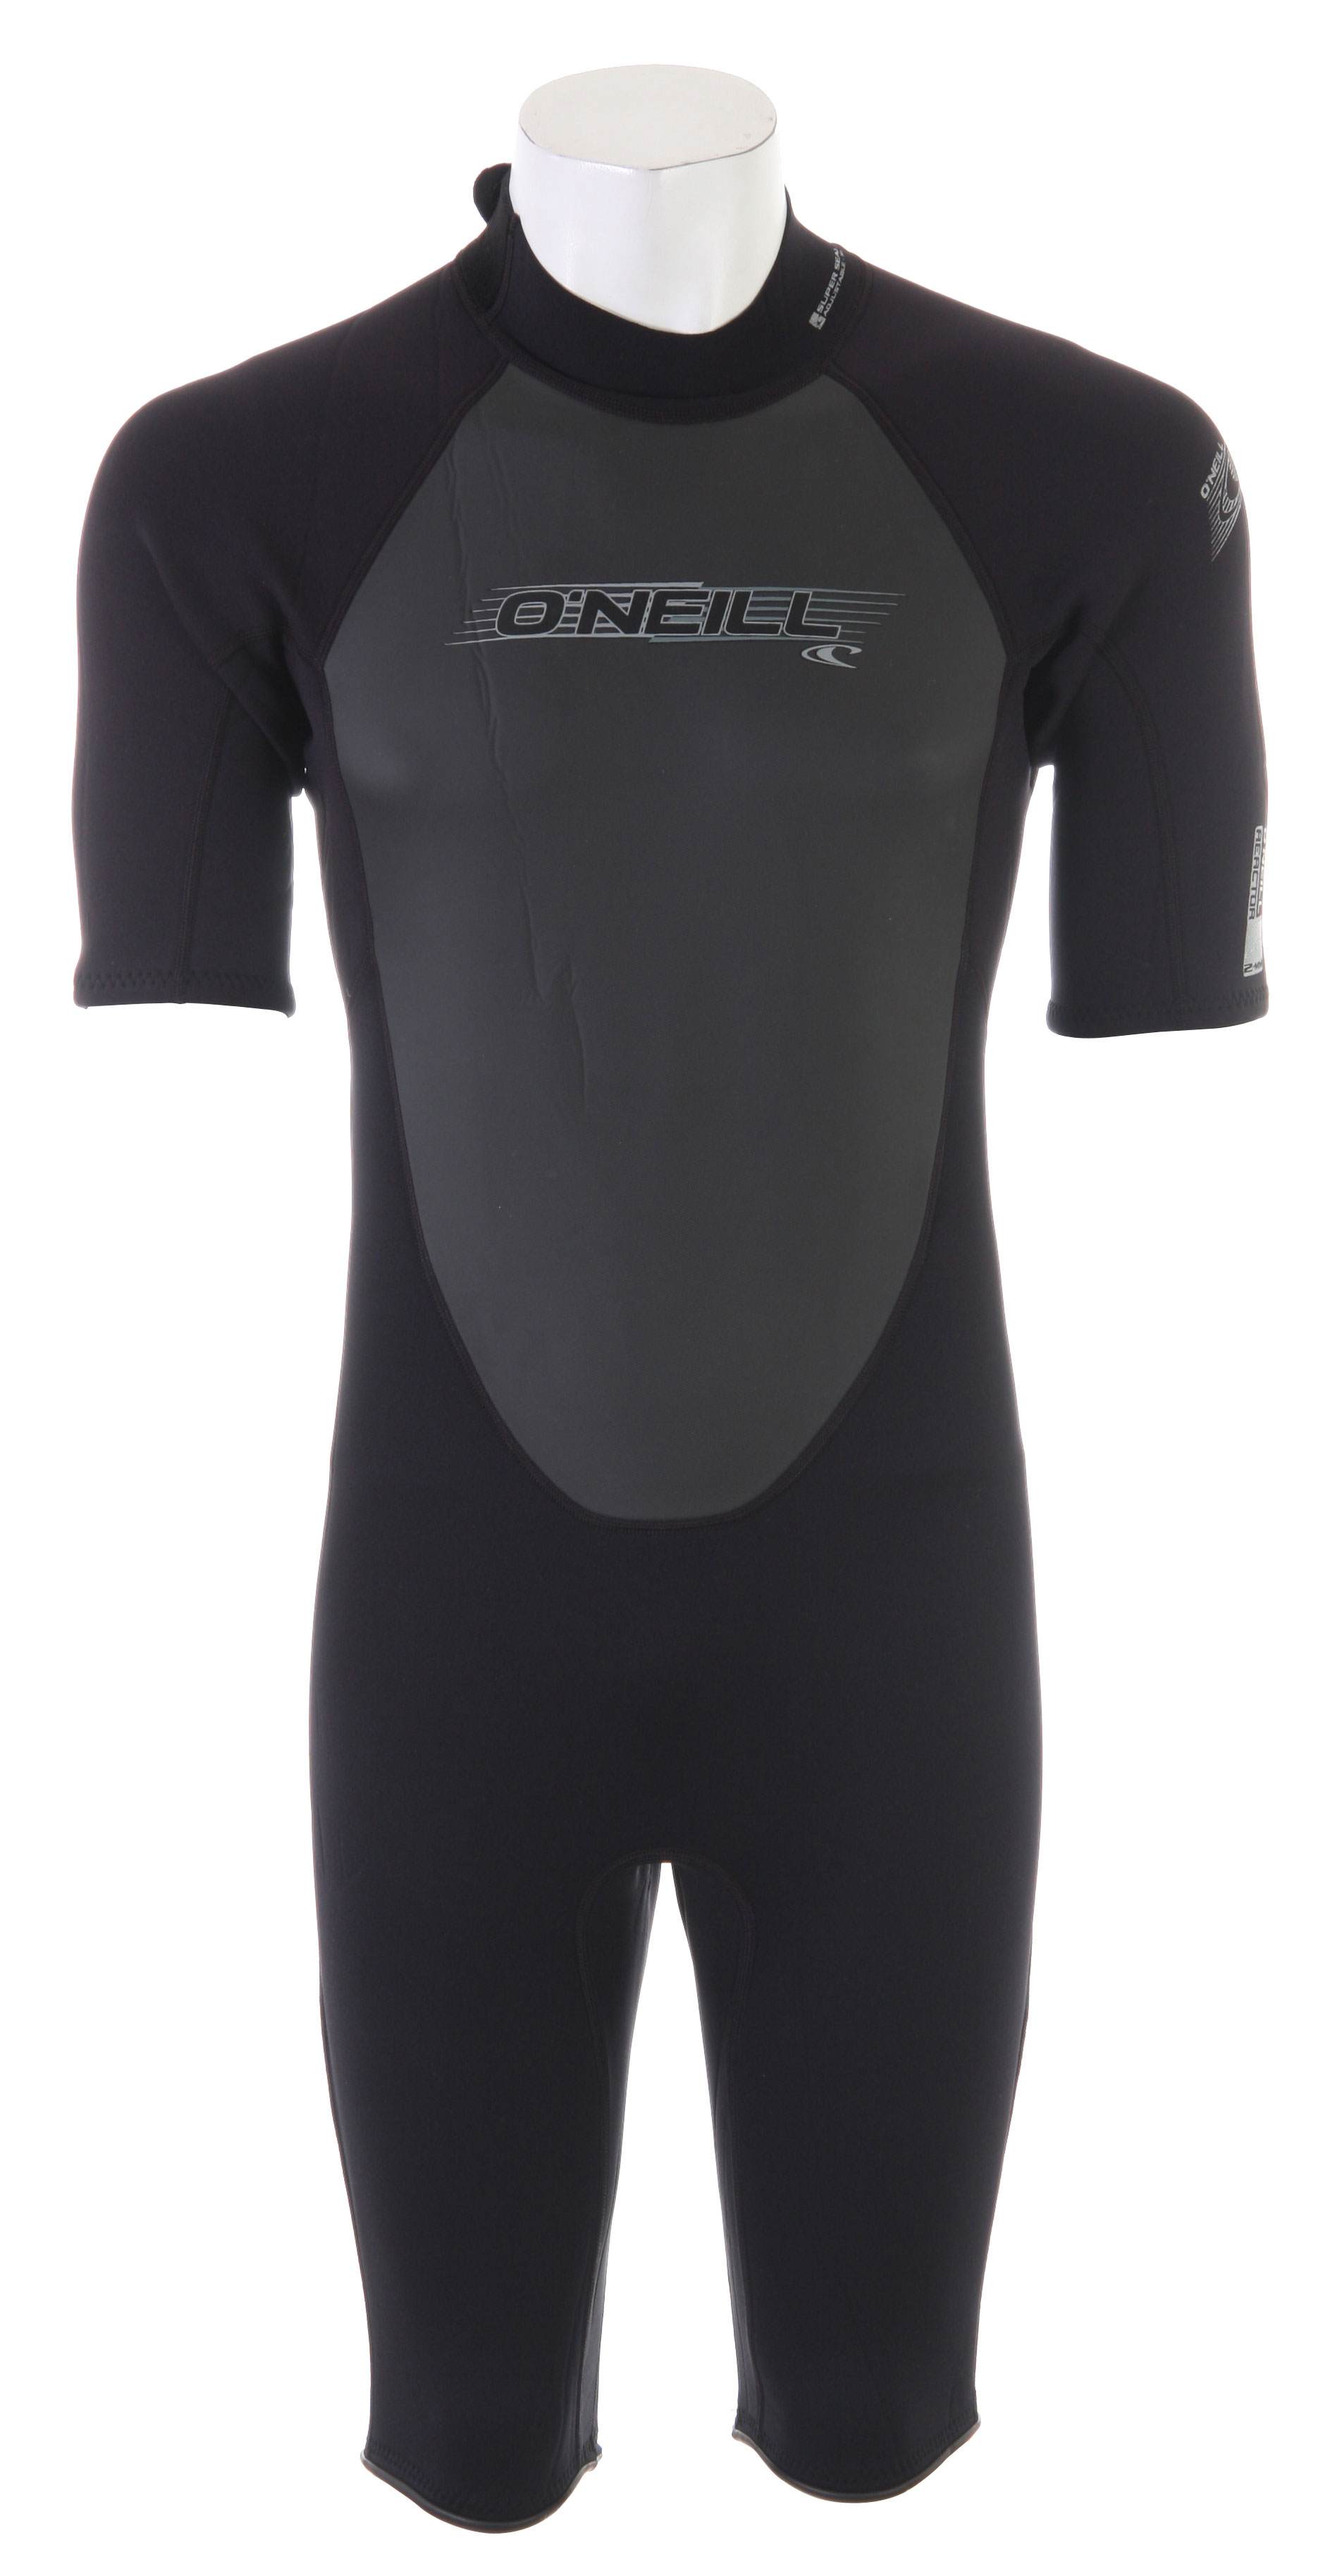 Surf Get a full dose of performance technology at an incredible value. Reactor Spring Wetsuits utilizes O'Neill's exclusive FluidFlex in the shoulder and sleeves, a fully adjustable super seal neck, and Krypto Knee Padz. Key Features of the O'Neill Reactor Spring Wetsuit: Top Sleeve/Under Sleeve: FluidFlex Body: Fluid Foam Chest/Back: Mesh smooth skin Fluid Foam Knee: Abrasion Resistant Kevlar Neck: Smooth Skin Fluid Foam: Dry Seal 30% FluidFlex Krypto Padz: ergonomic knee protection YKK back zip system Super Seal Collar: fully adjustable seal Hidden Key Pocket Flatloc Stitched (breathable seams) Strategic Seamless Paddle Zones - $74.95